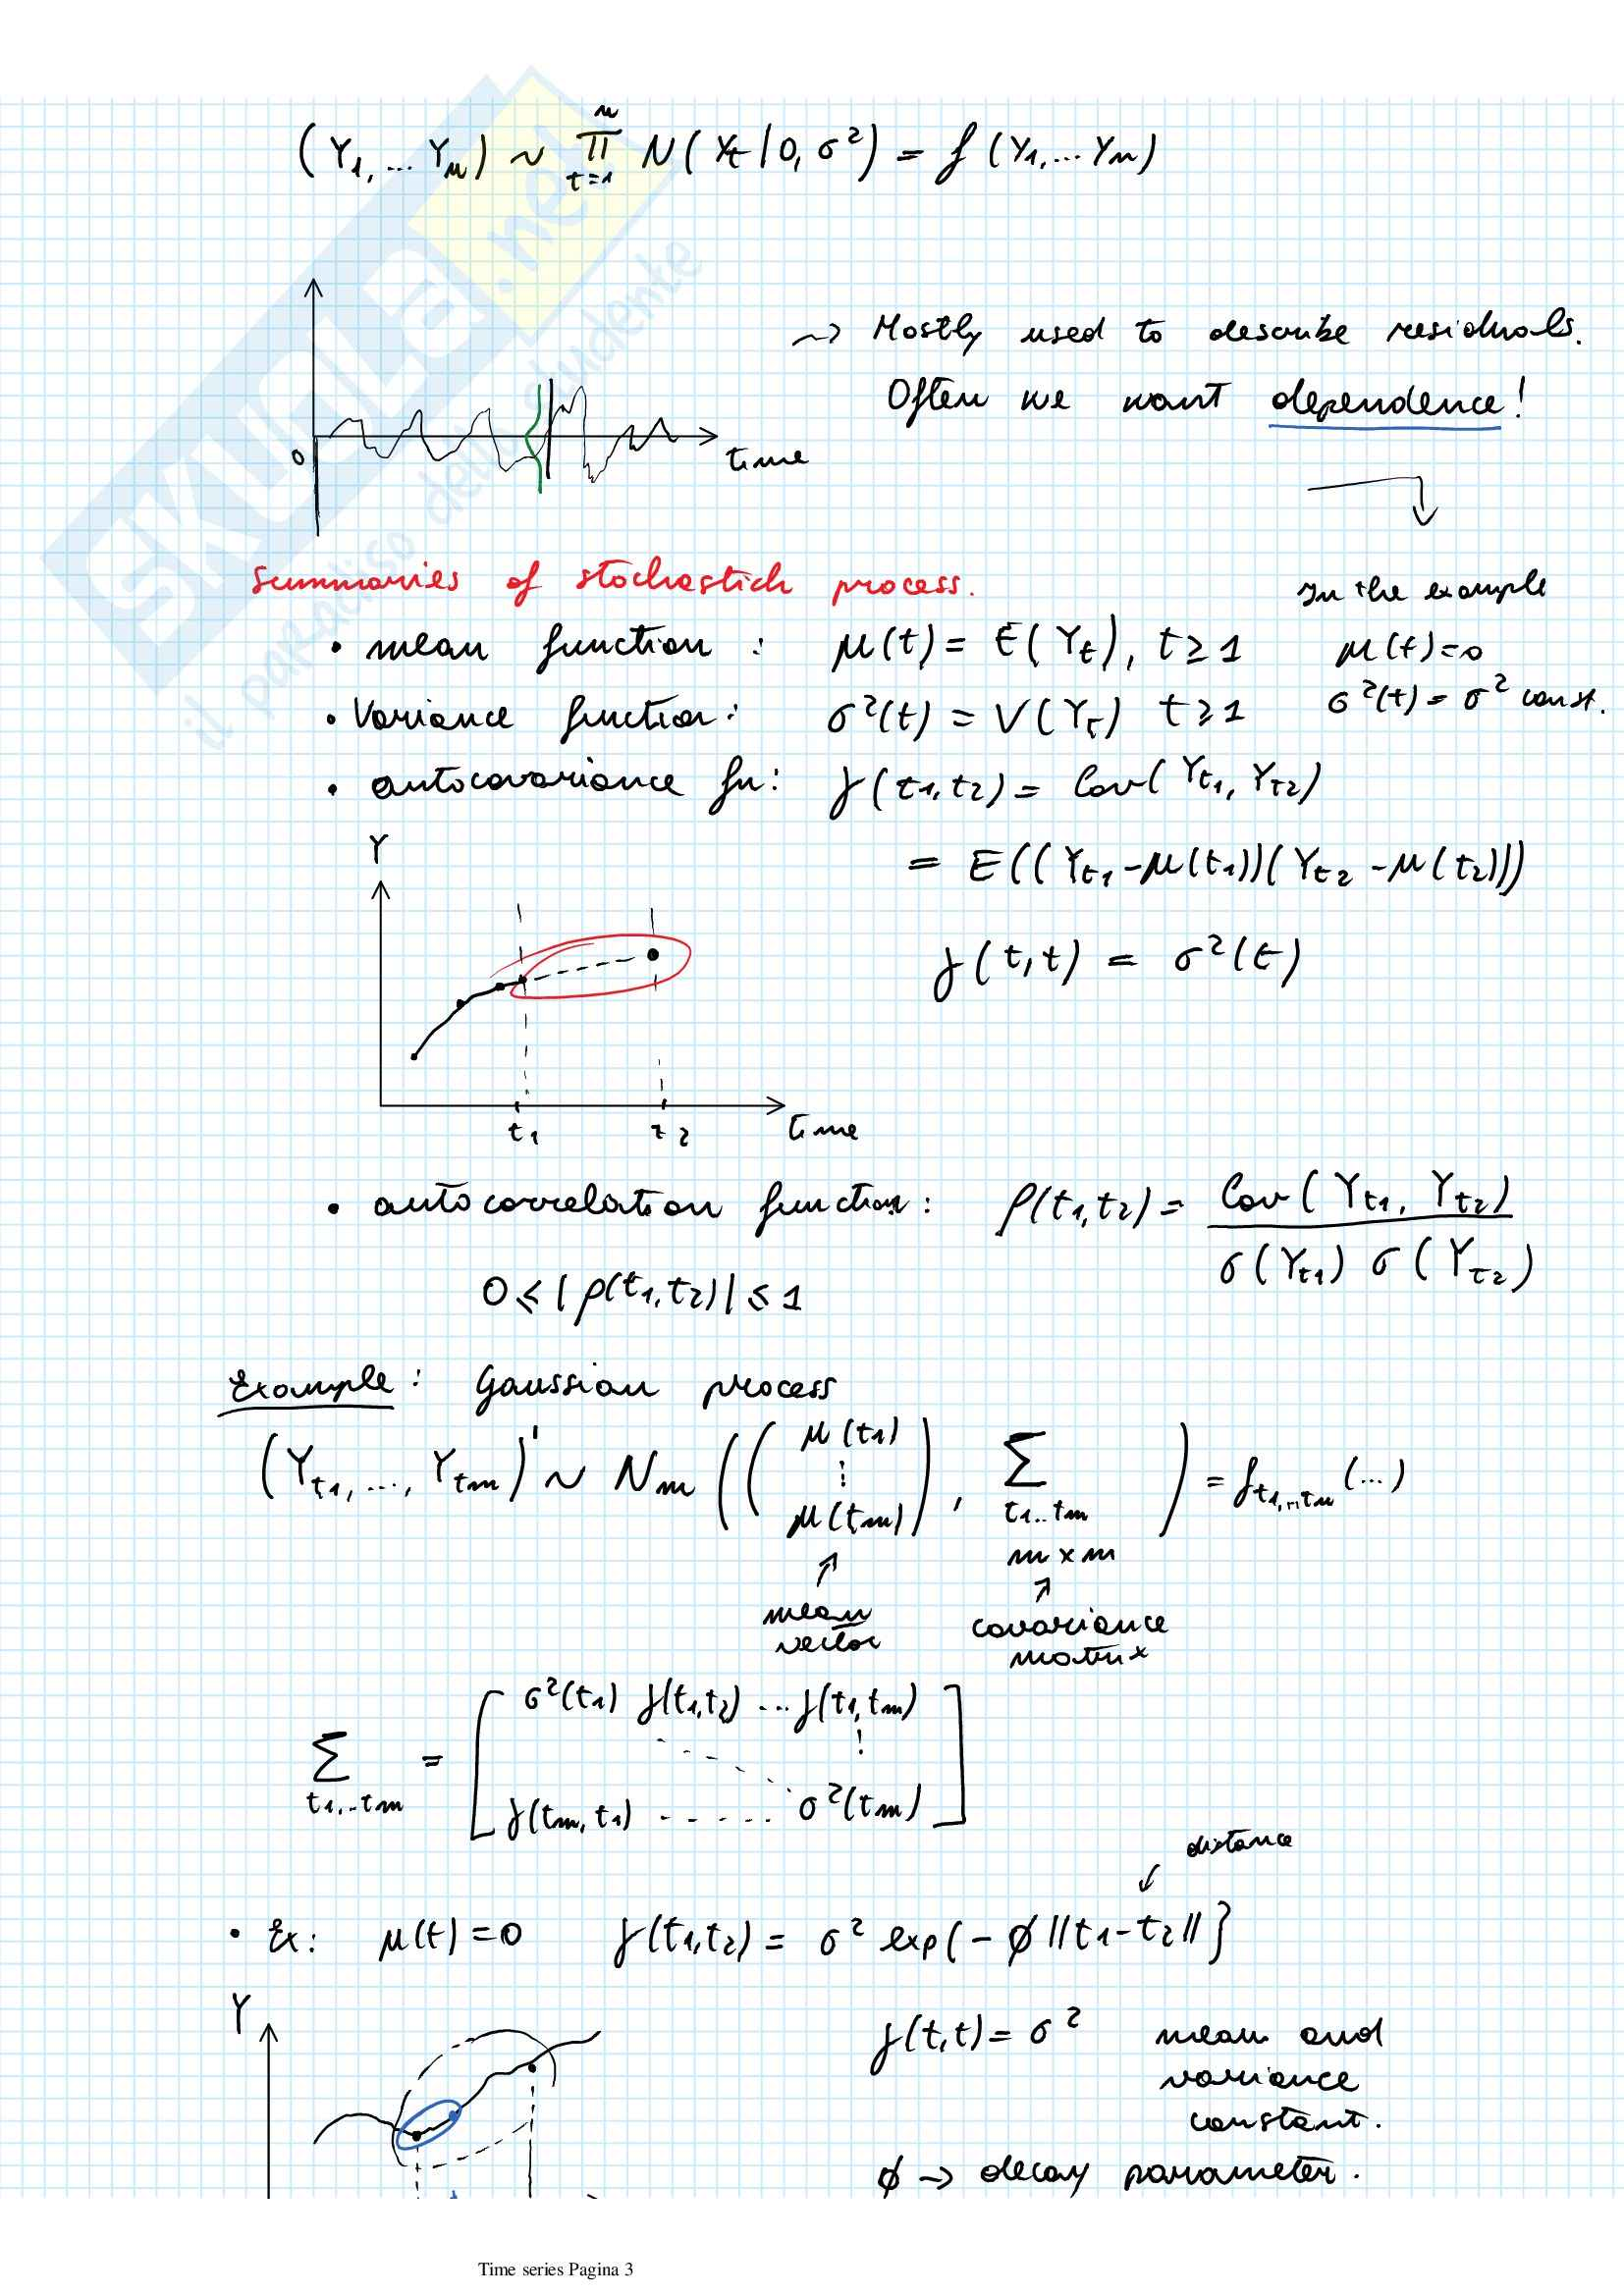 Time series analysis of economic and financial data - Appunti Pag. 11